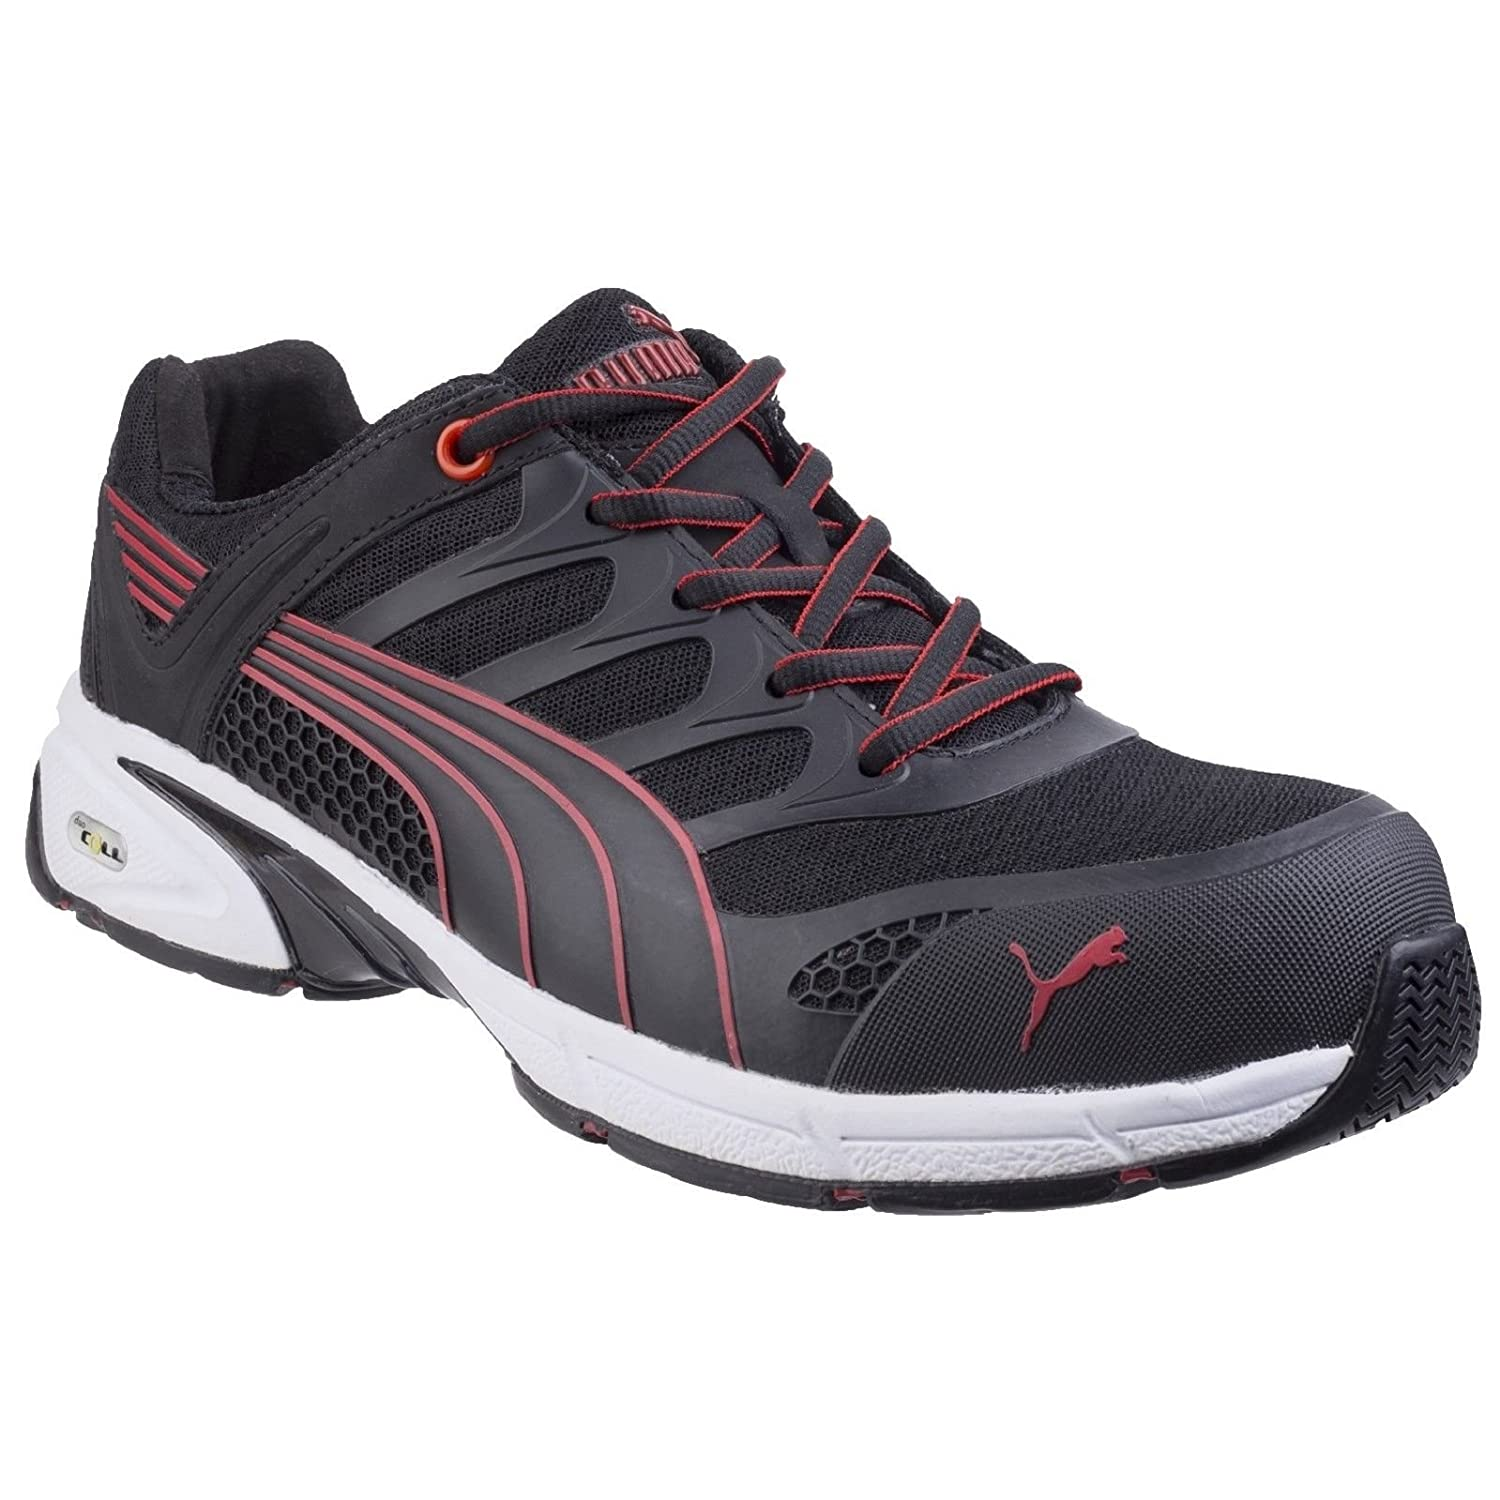 sports shoes best quality pretty cool Puma Safety Mens Fuse Motion Trainers (7.5 UK) (Black/Red ...